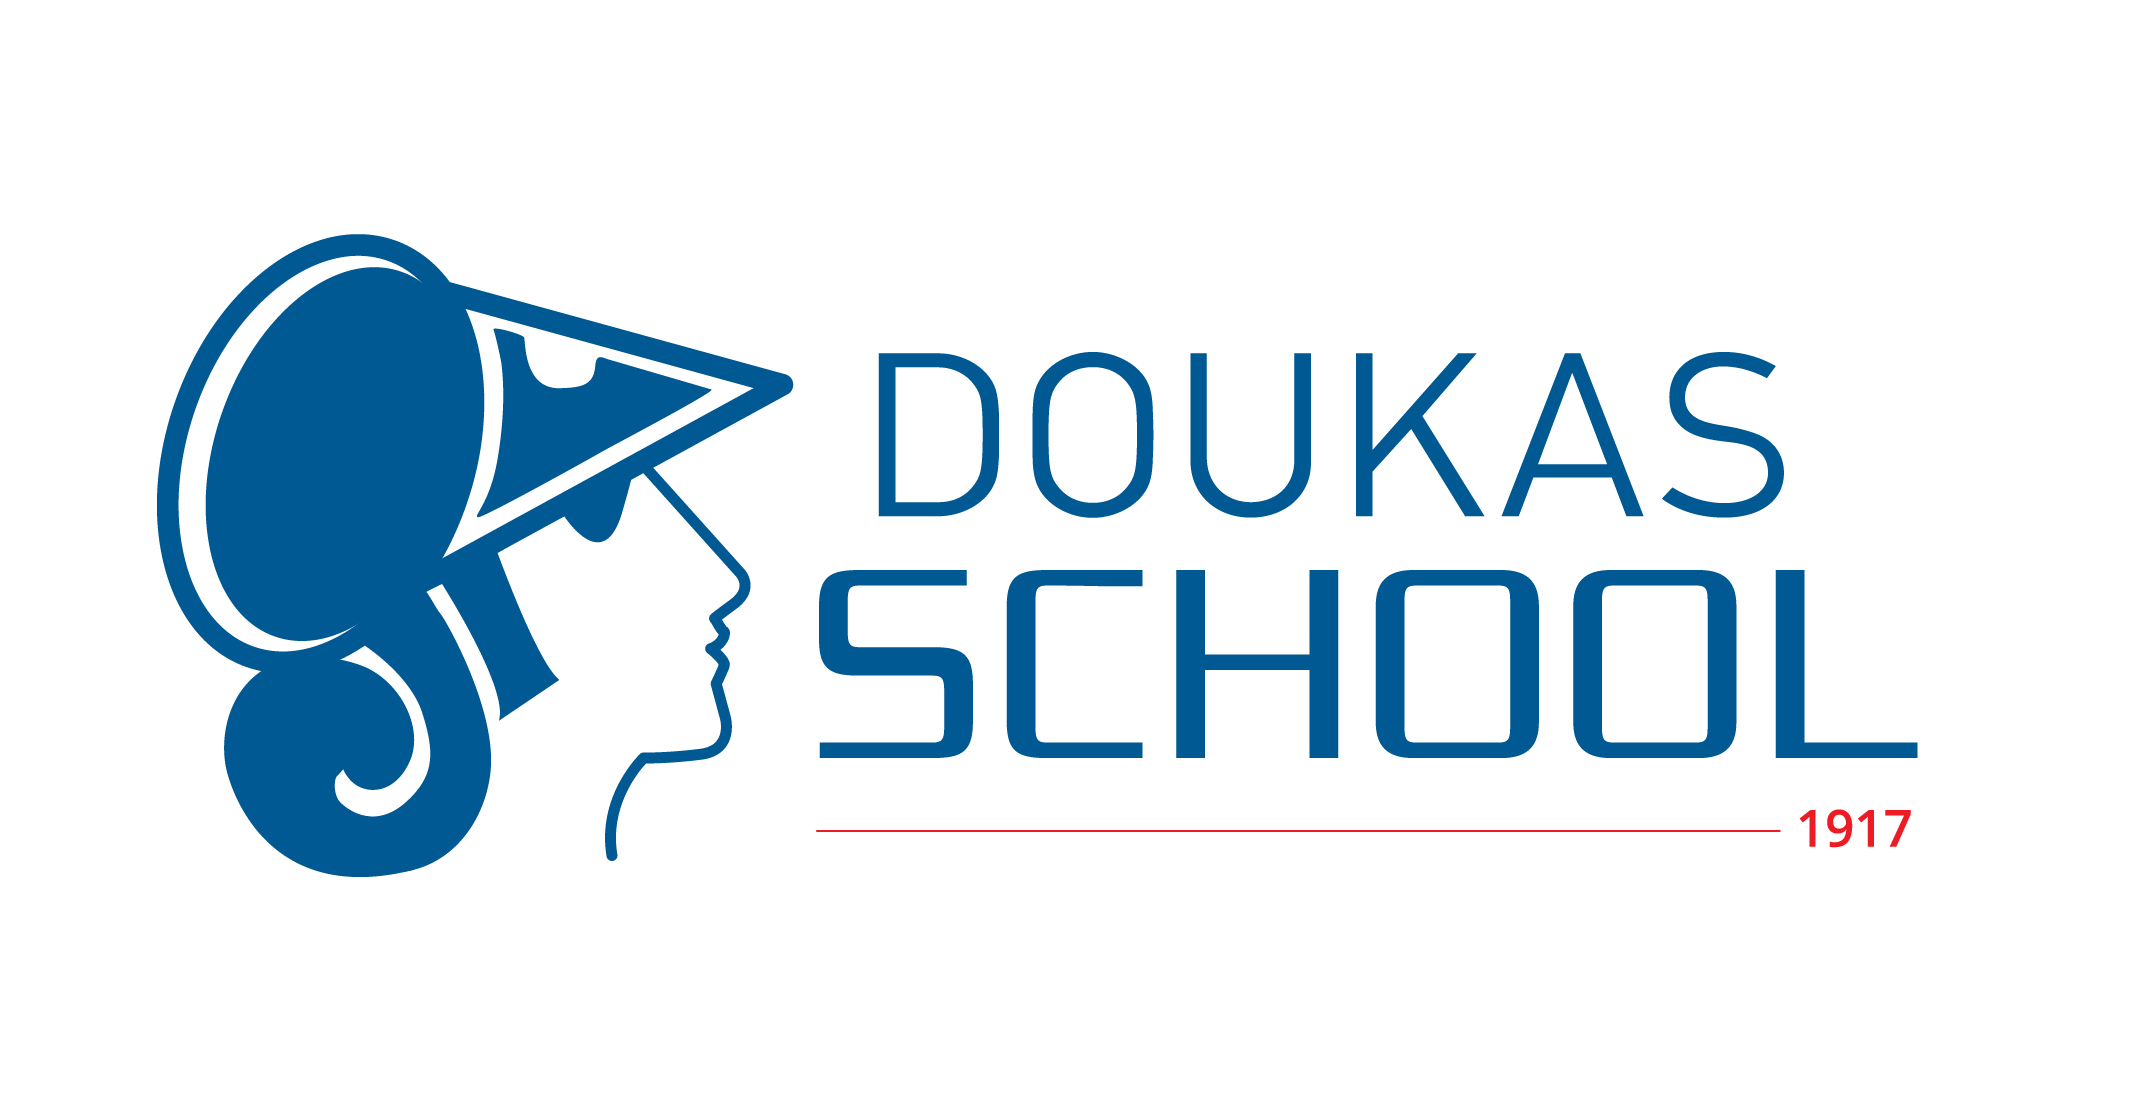 Doukas School